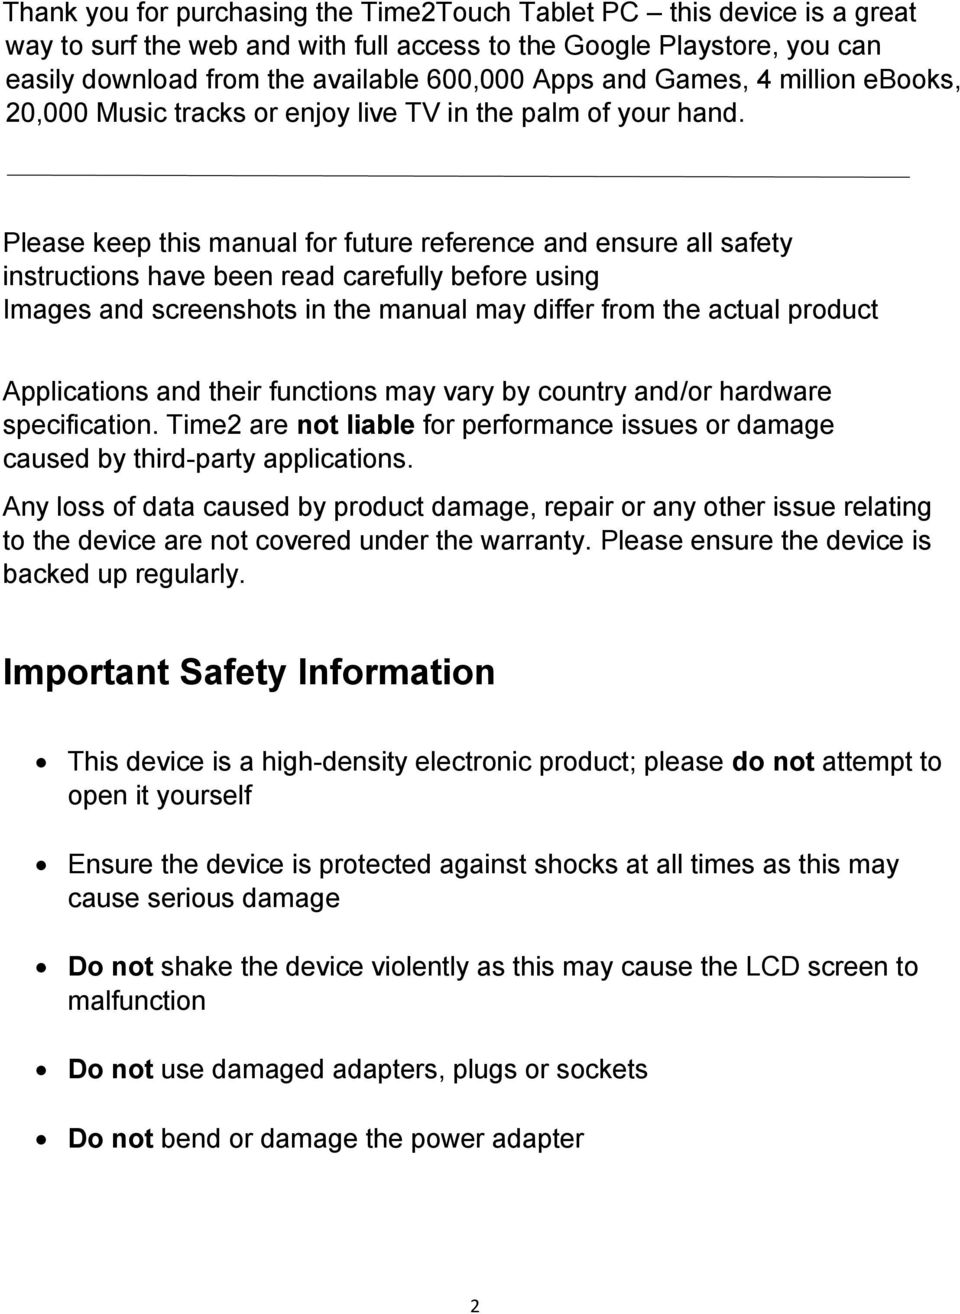 Please keep this manual for future reference and ensure all safety instructions have been read carefully before using Images and screenshots in the manual may differ from the actual product